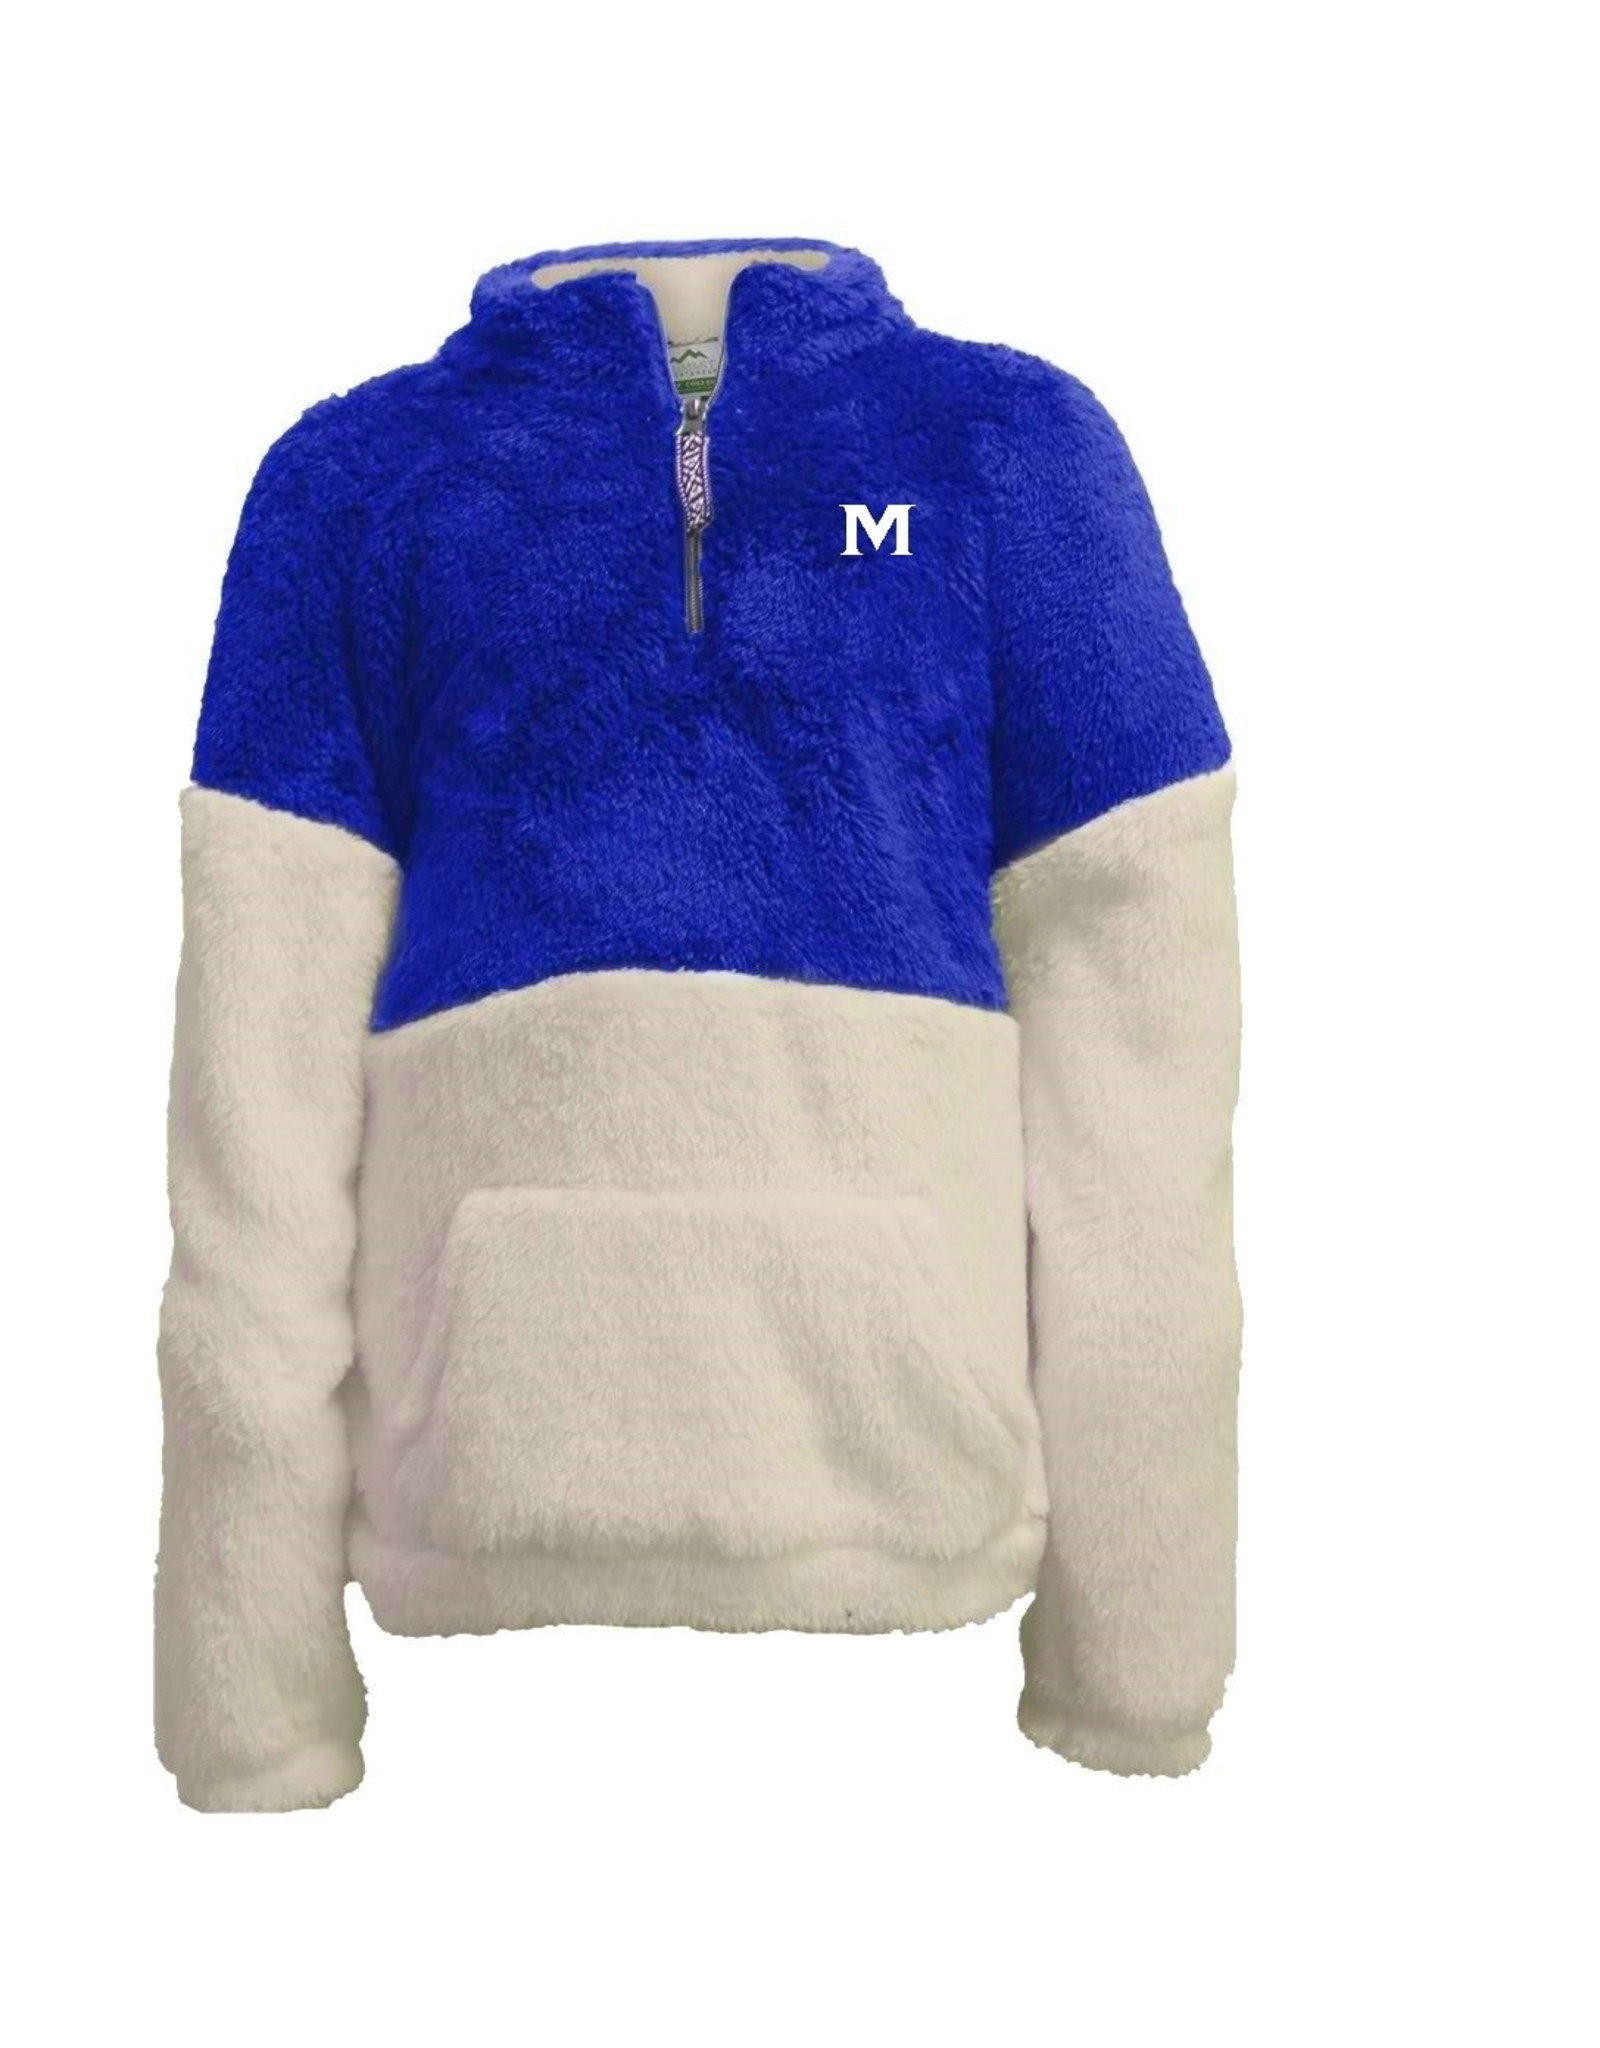 YOUTH DOUBLE PLUSH PULLOVER